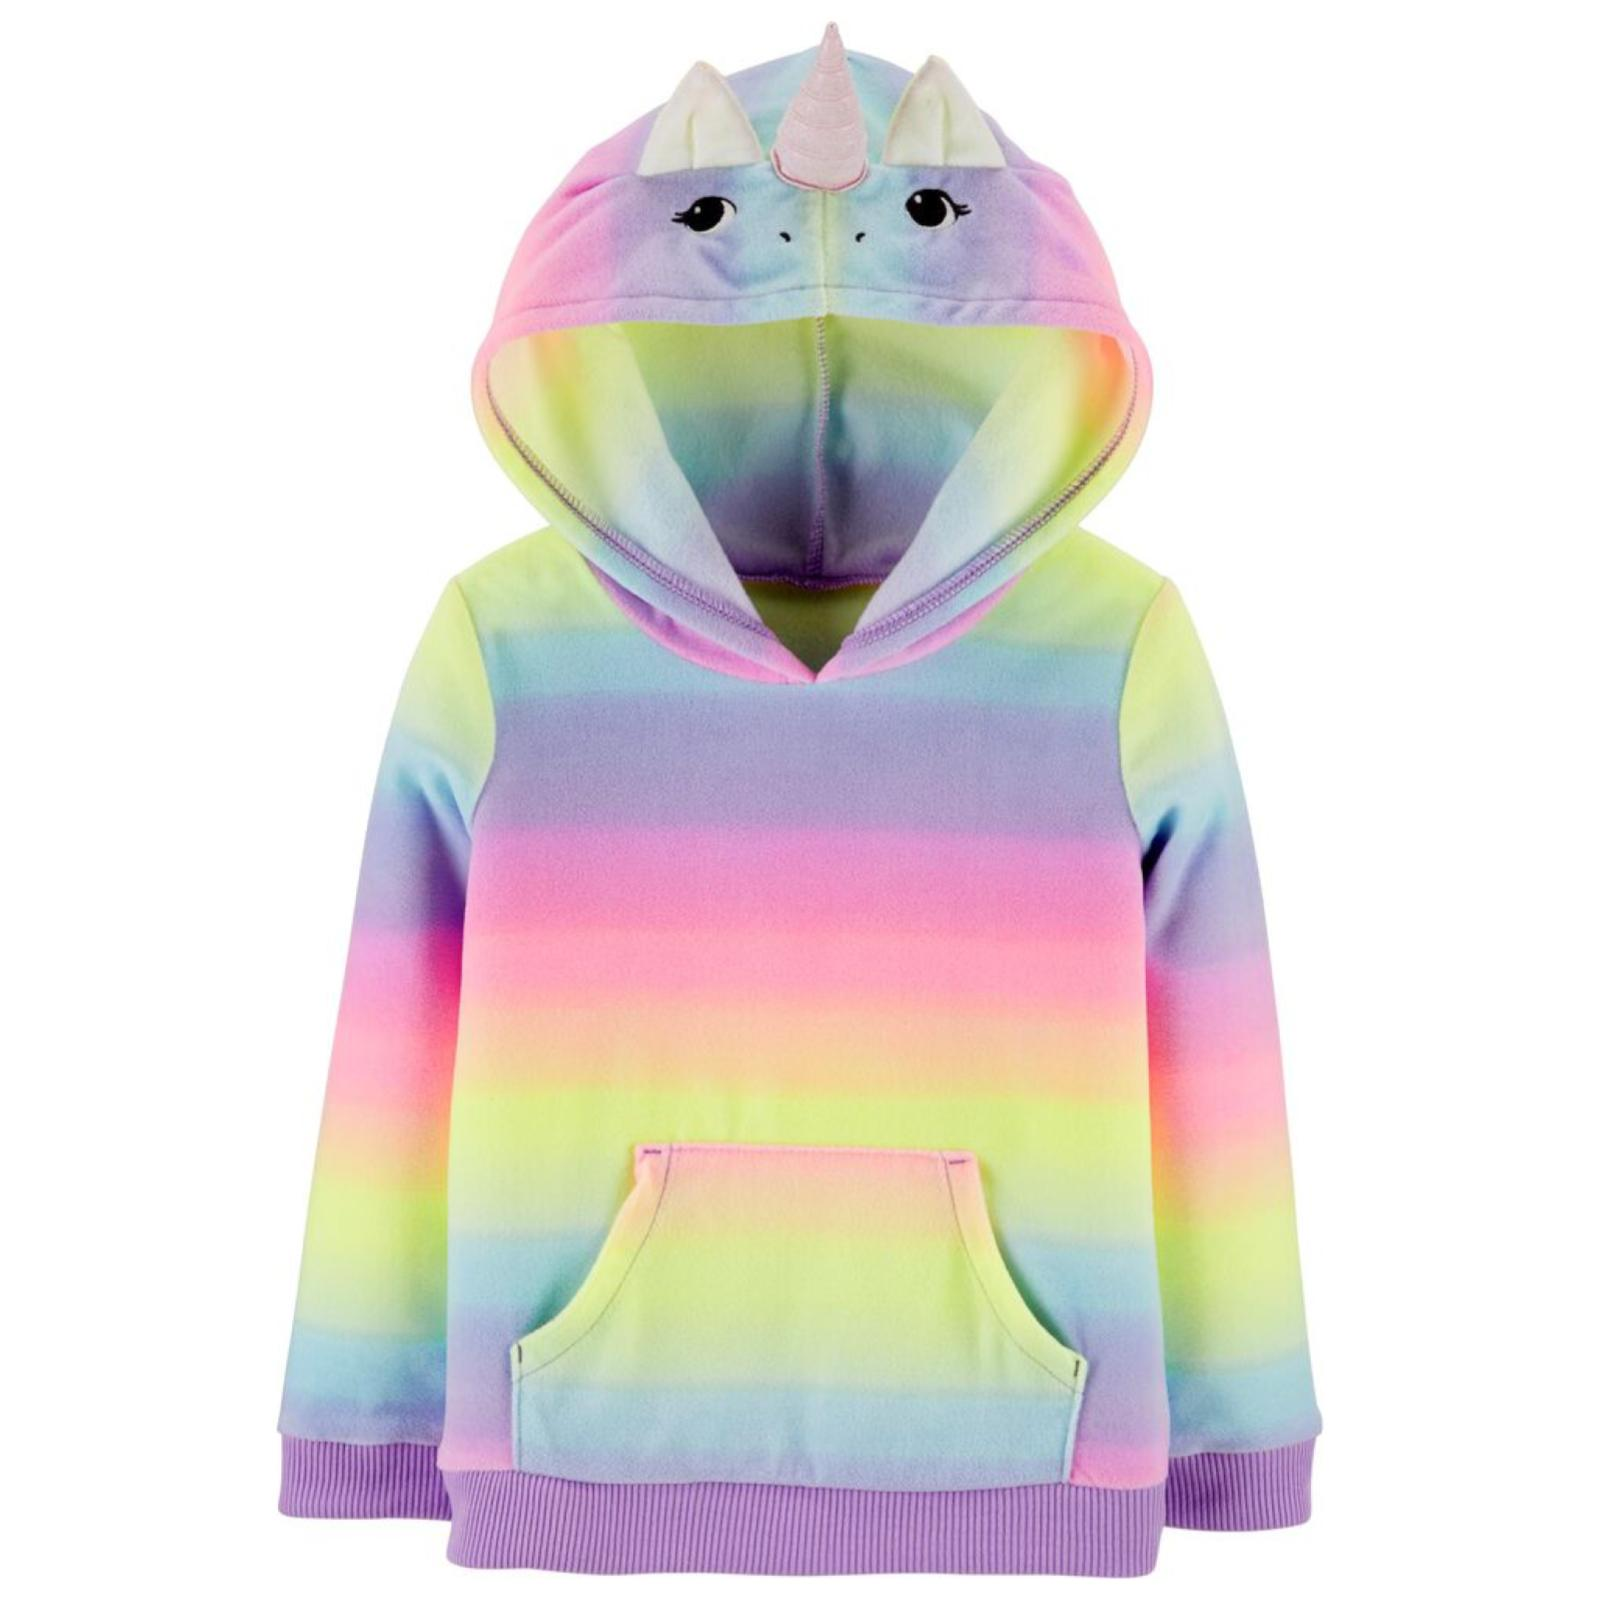 Sweater Fleece Unicornio | 18 meses